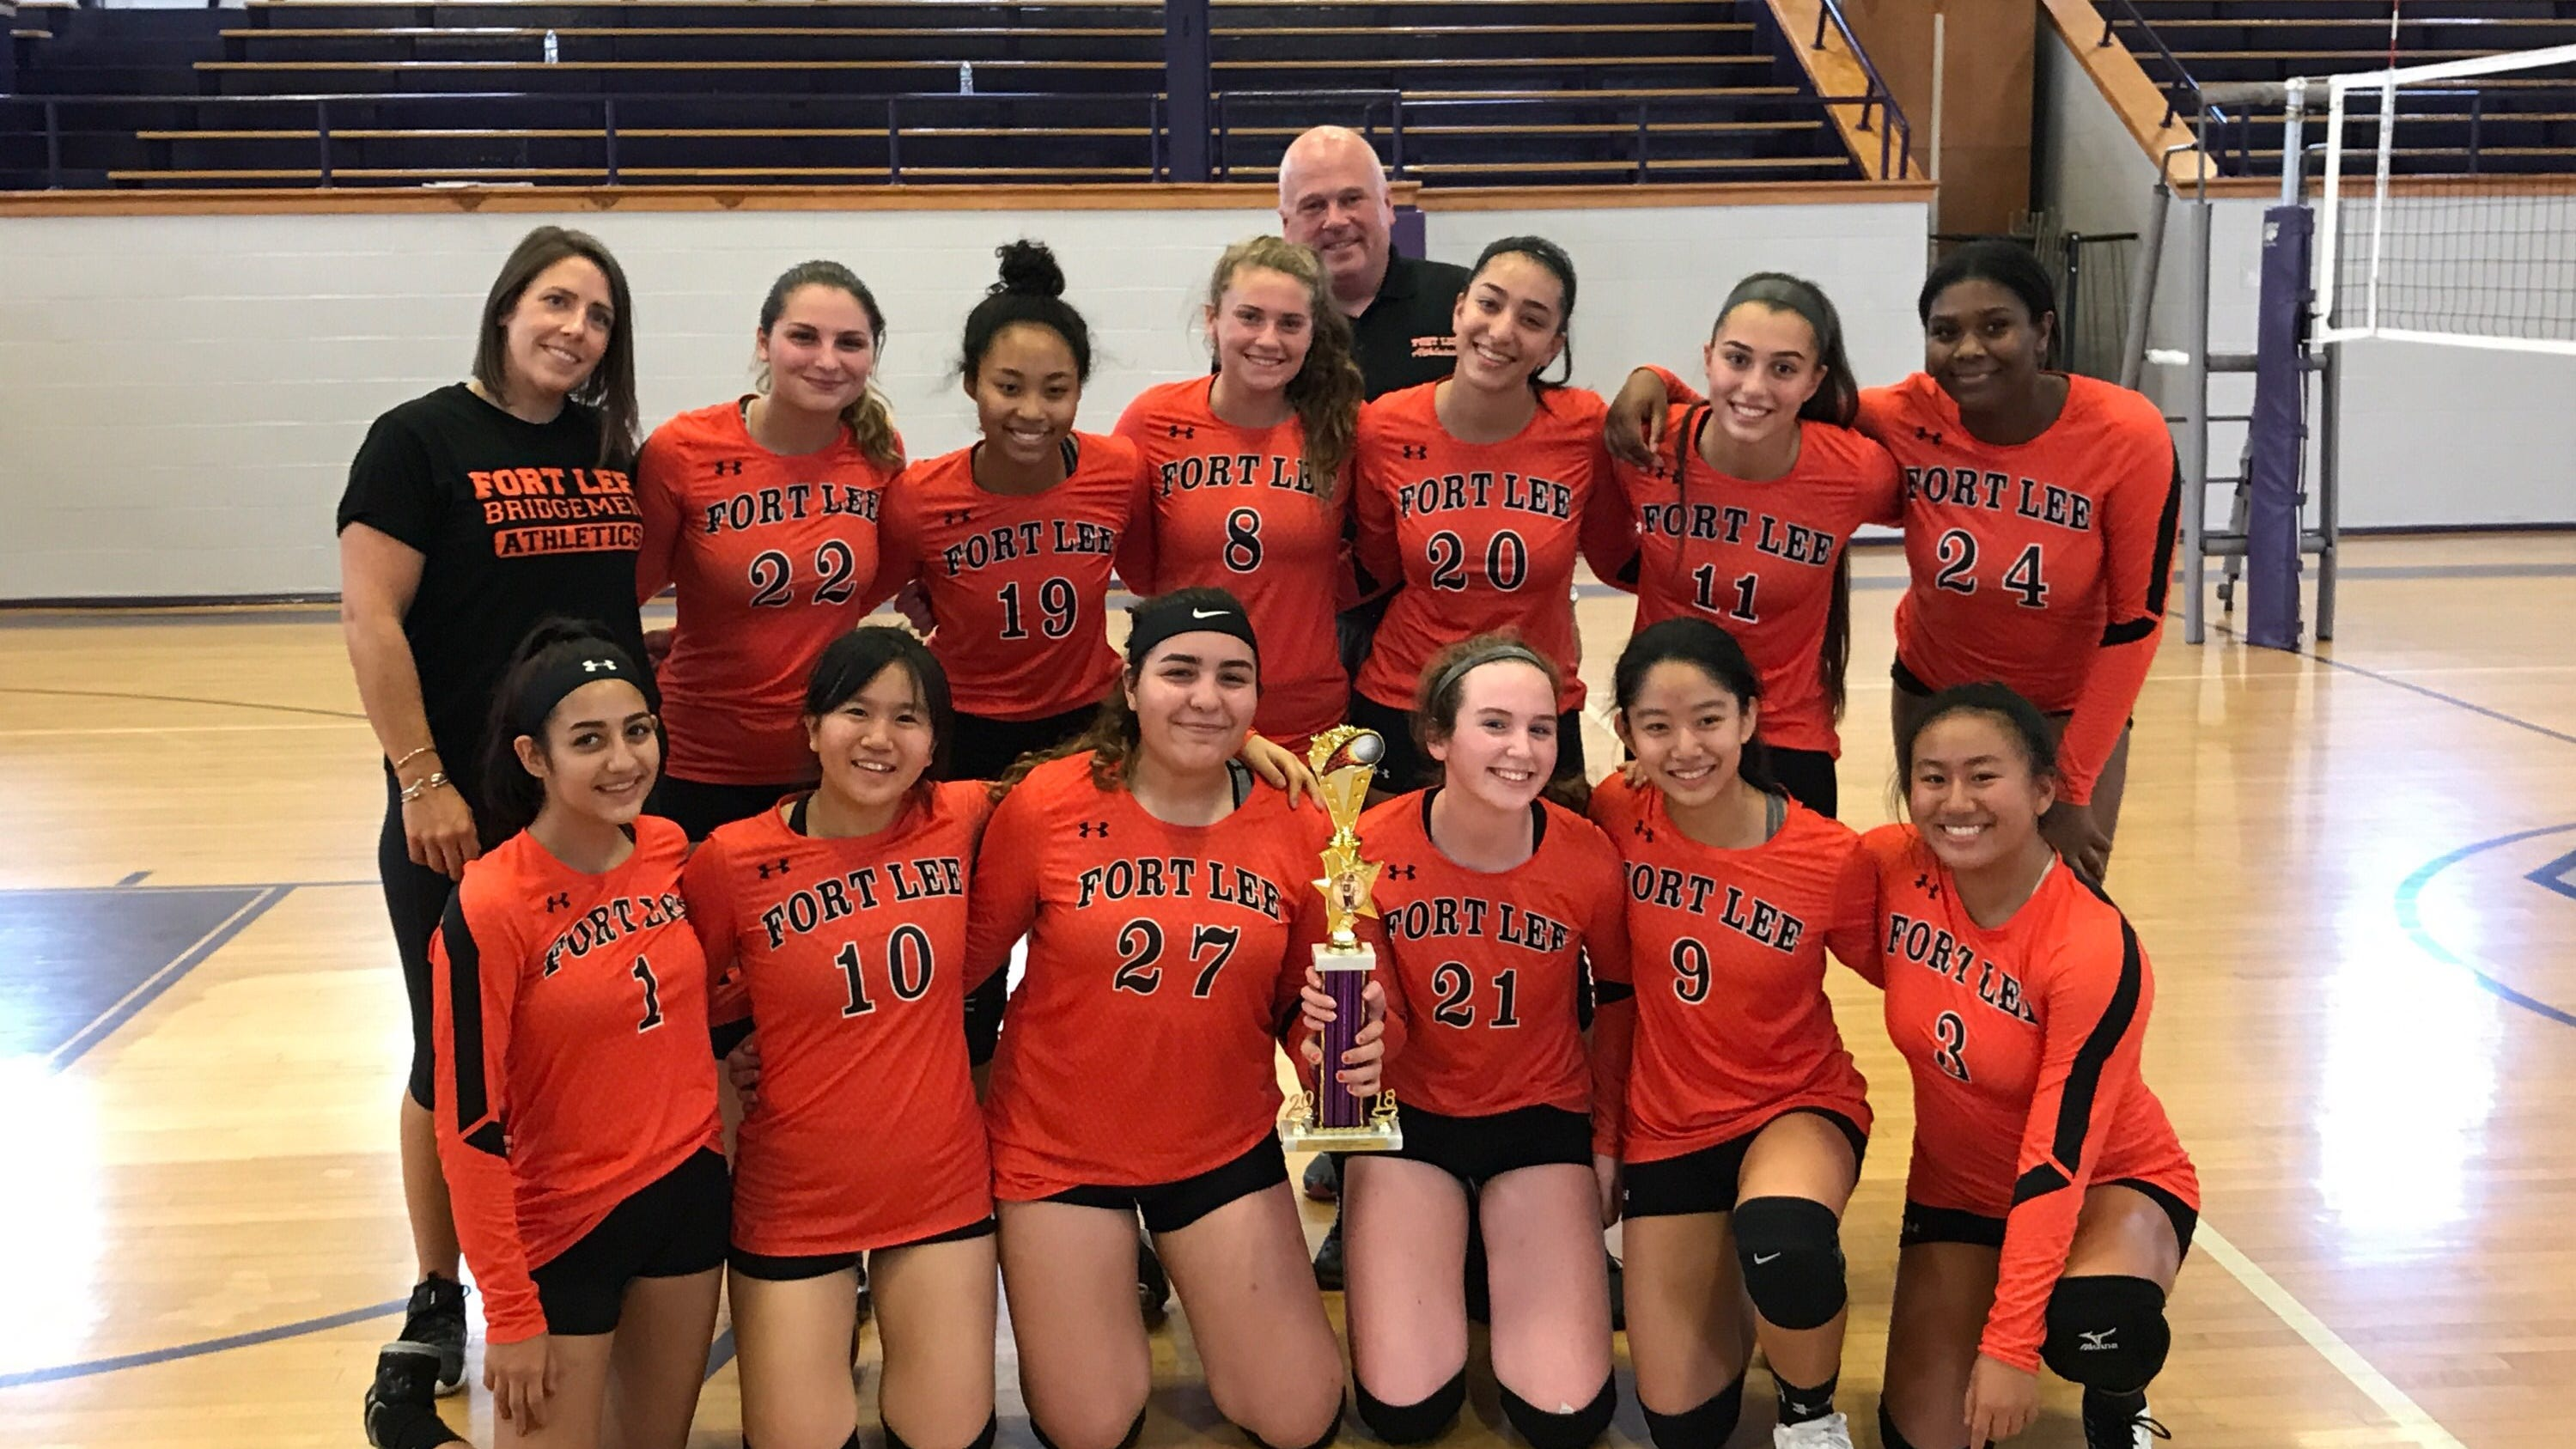 Girls volleyball: Best of the Week, Top 20 rankings for Sept. 18